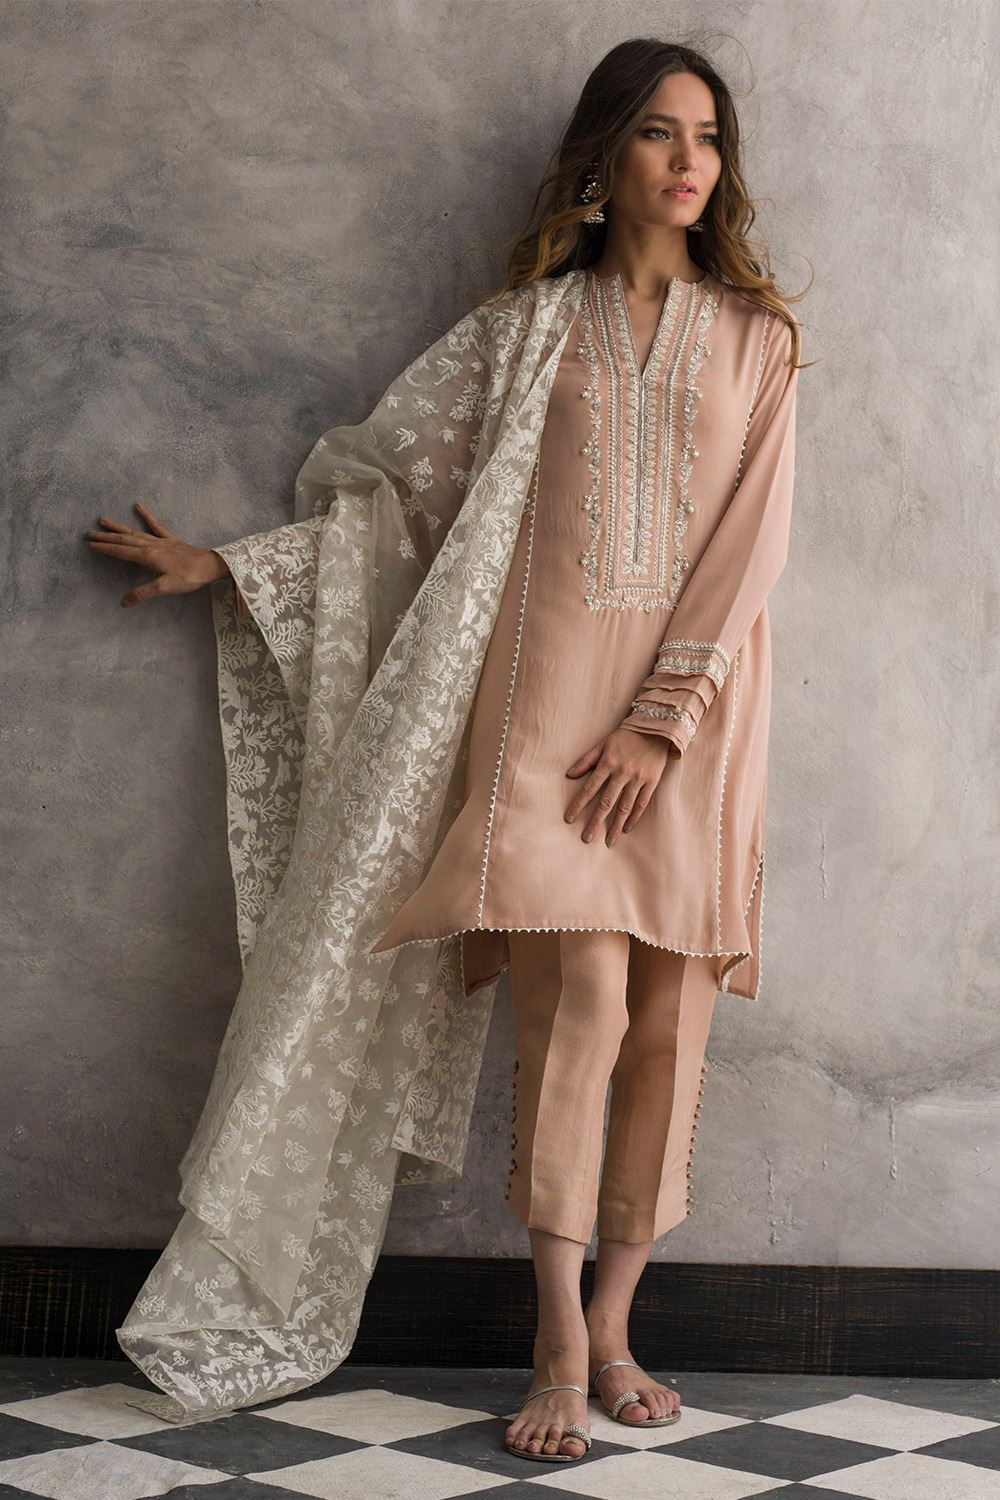 To acquire Eid collection dresses designed by nida azwer picture trends